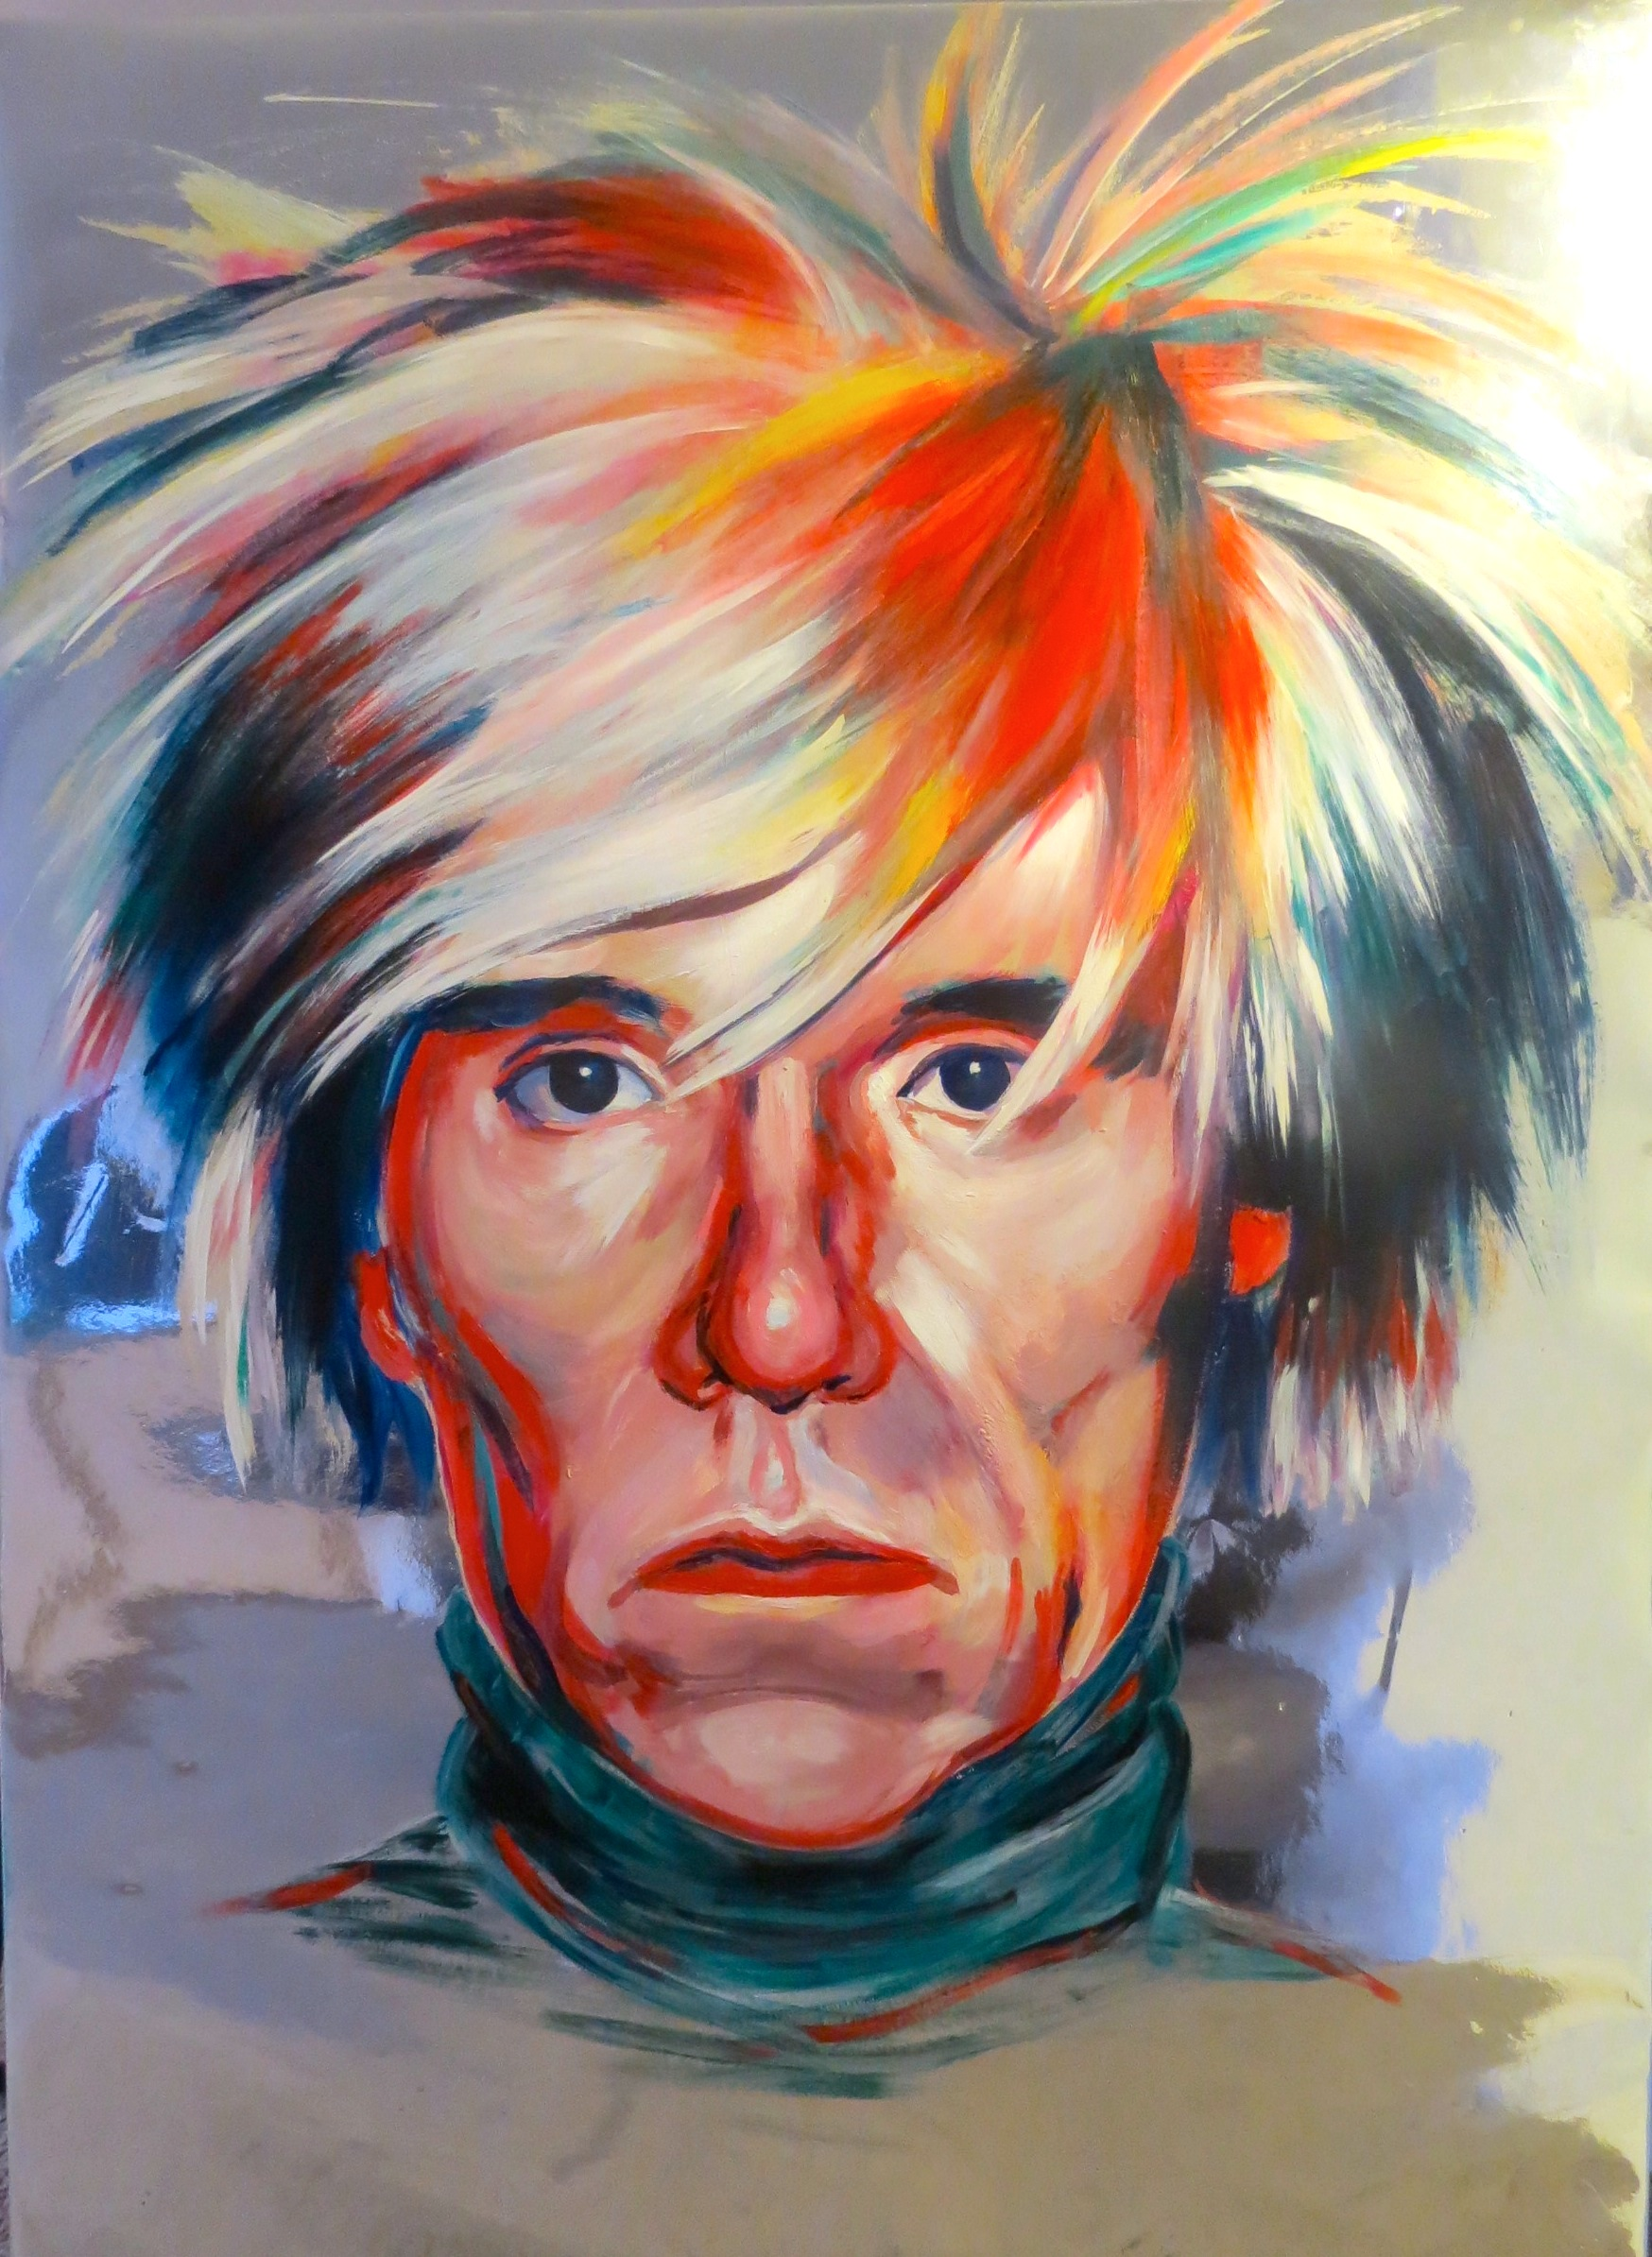 Andy Warhol and His Silver Factory